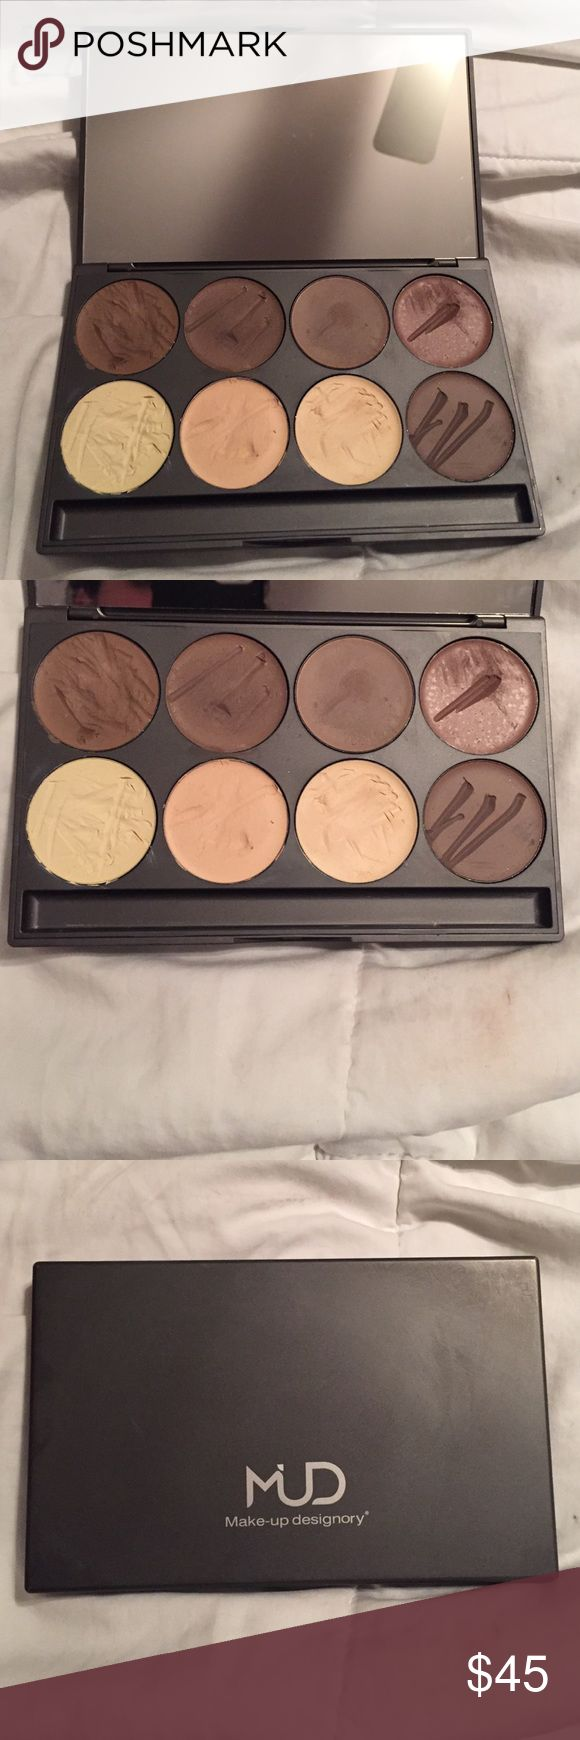 Makeup Designory Highlight Shadow Palette cream contour and highlight palette for all skin tones. gently used with spatula. retails for $118. Sephora Makeup Concealer